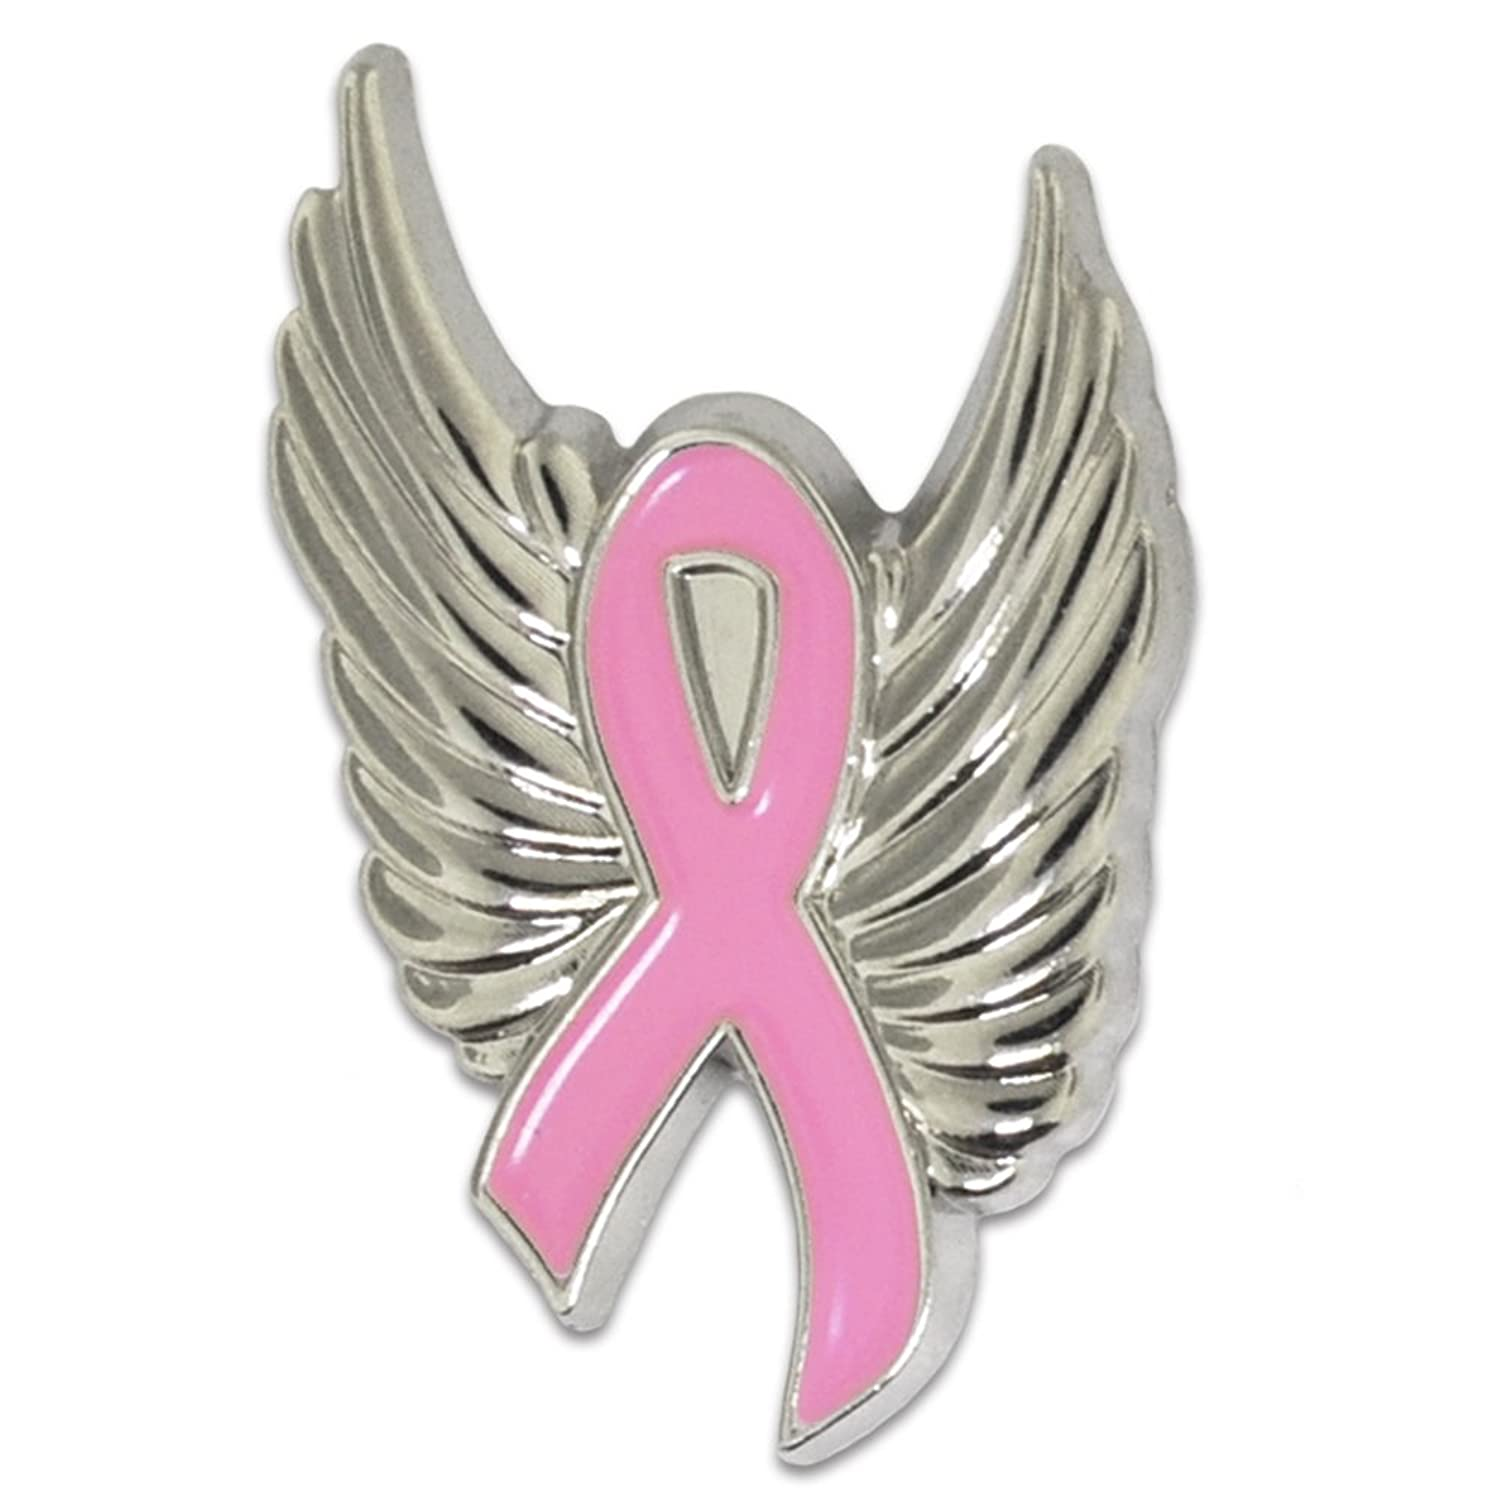 PinMart's Breast Cancer Pink Awareness Ribbon with Silver Angel Wings Enamel Lapel Pin